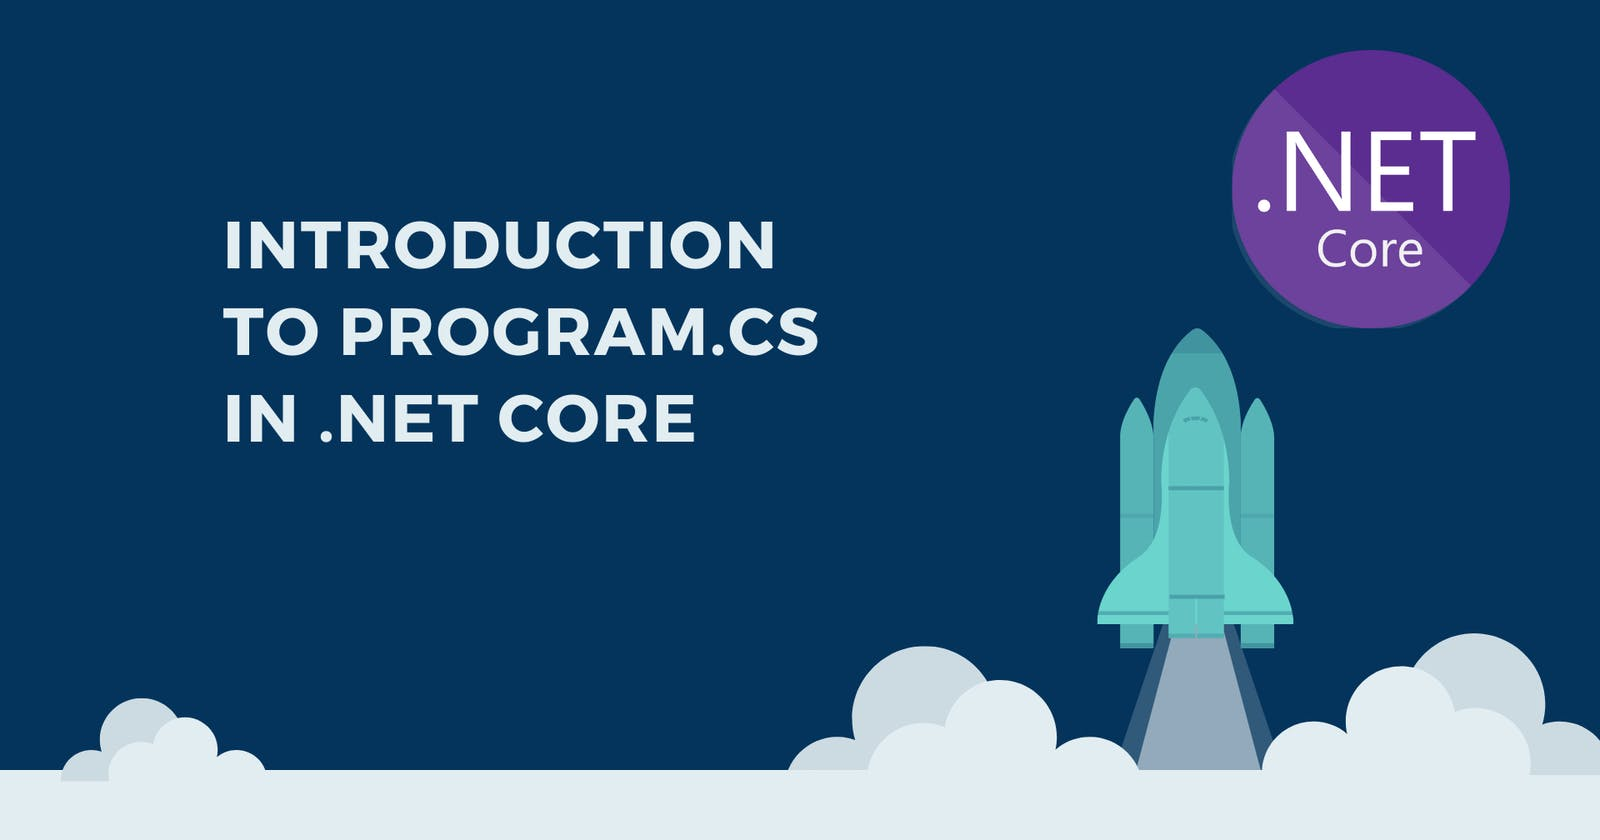 Introduction to Program.cs in .NET Core